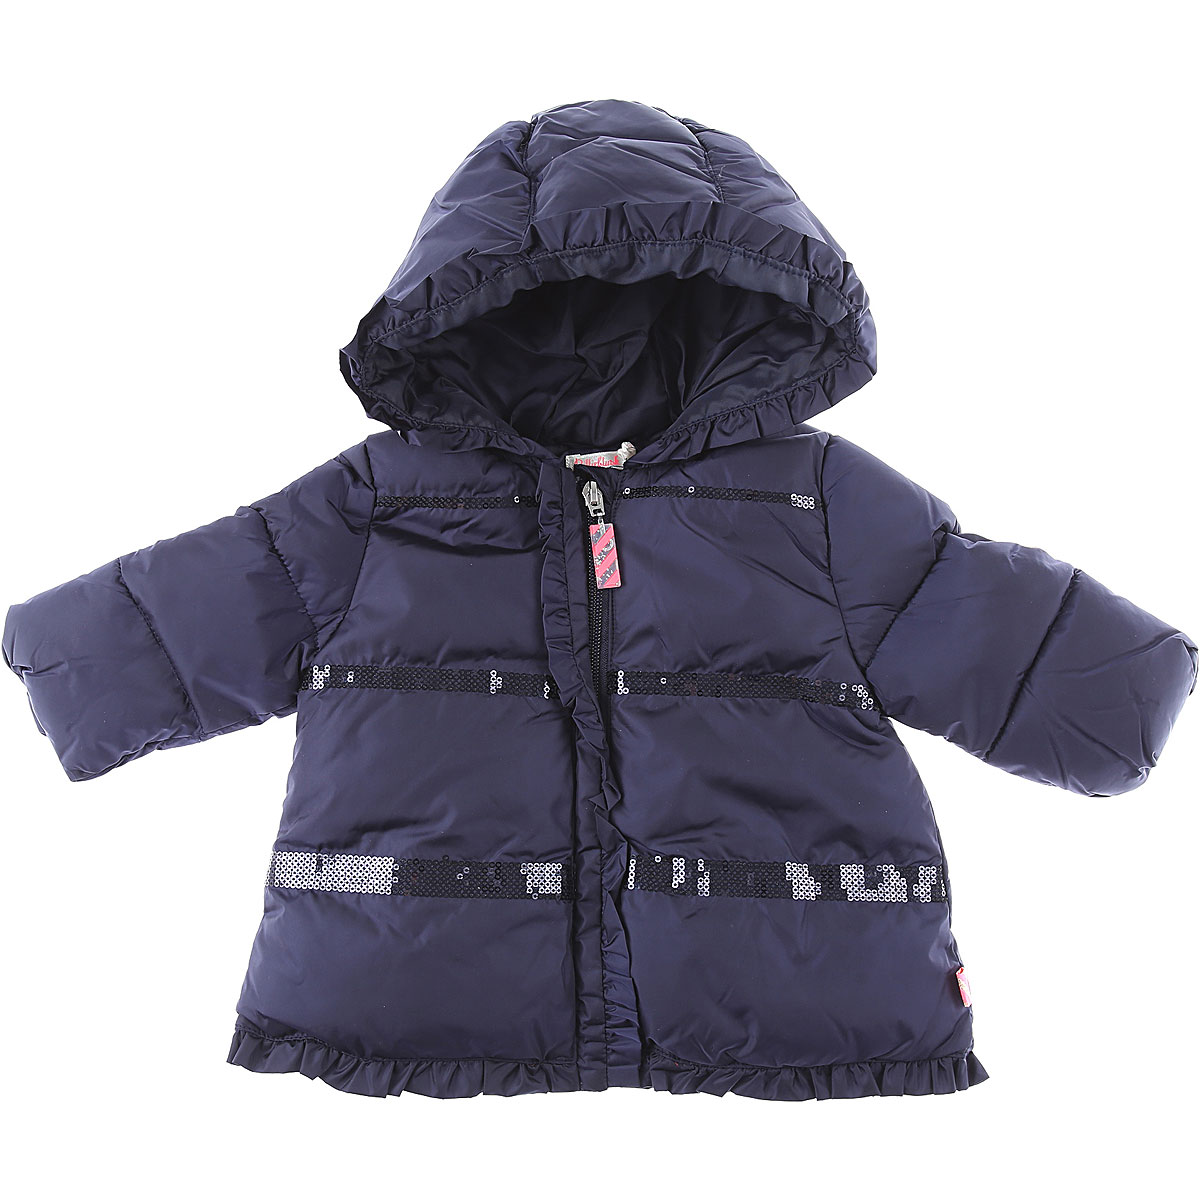 Billieblush Baby Down Jacket for Girls On Sale, Blue, polyamide, 2019, 12M 18M 2Y 6M 9M